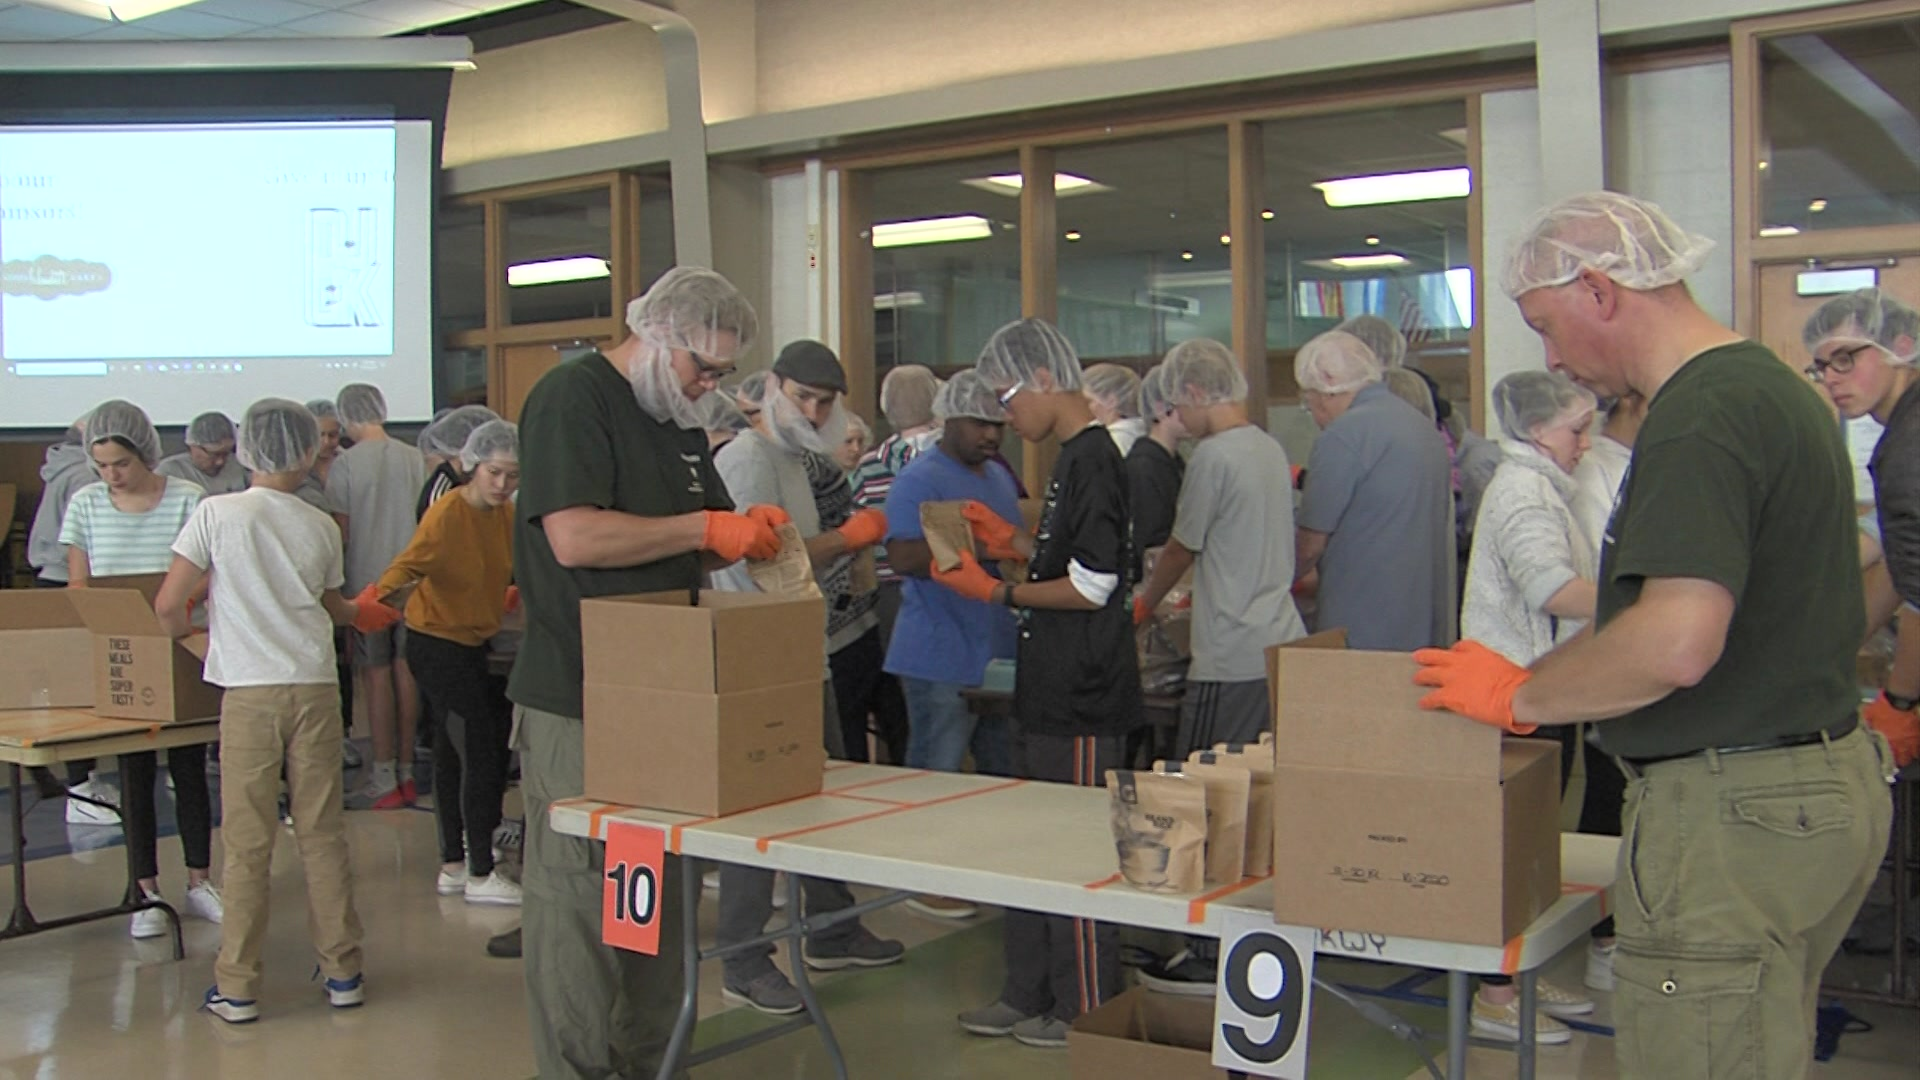 Over 300 volunteers pack 12,000 meals to help fight hunger locally